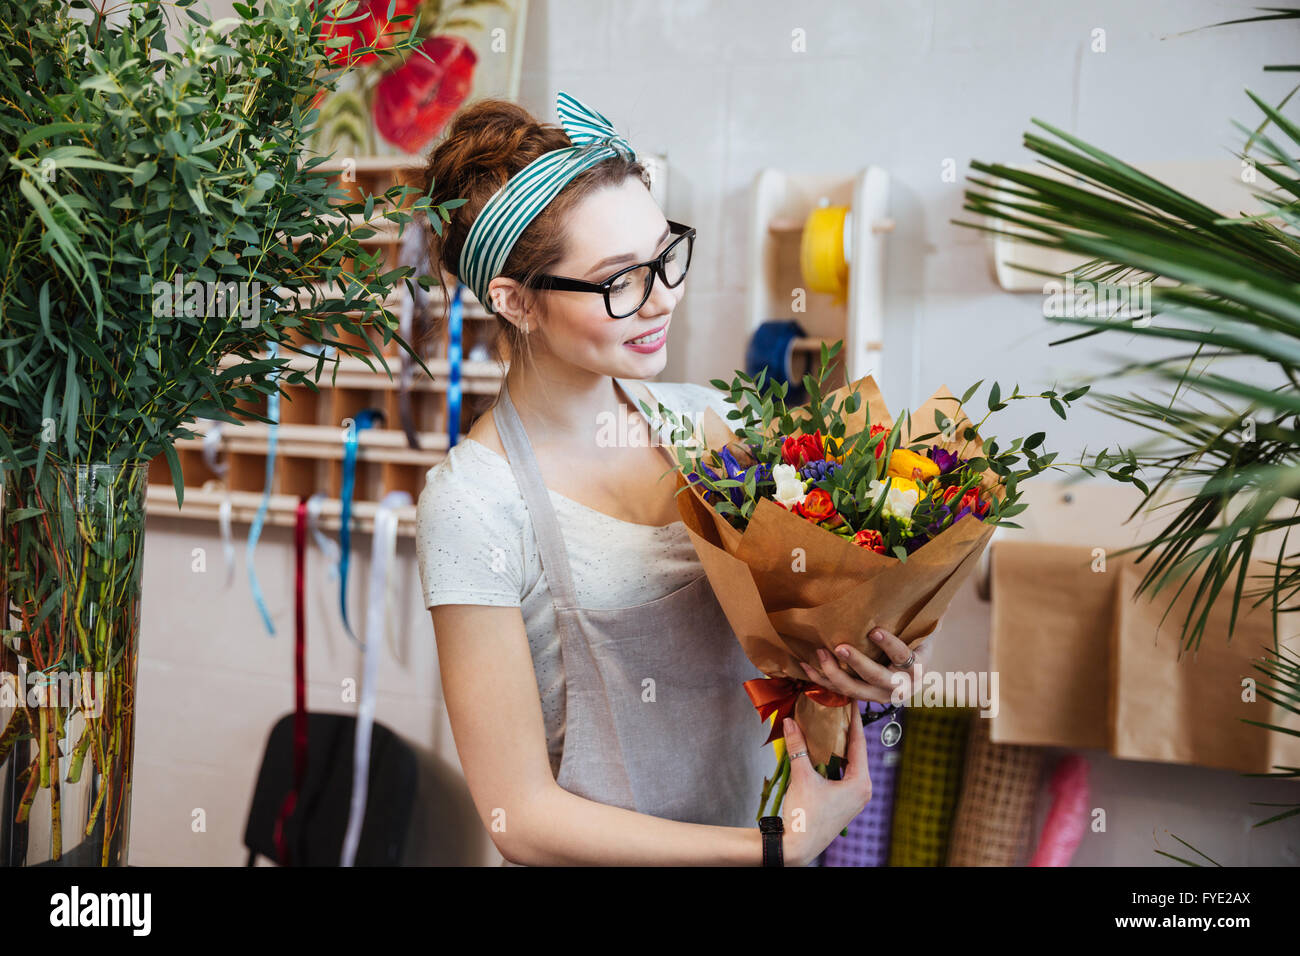 Smiling attractive young woman florist standing and holding bouquet of flowers in shop - Stock Image